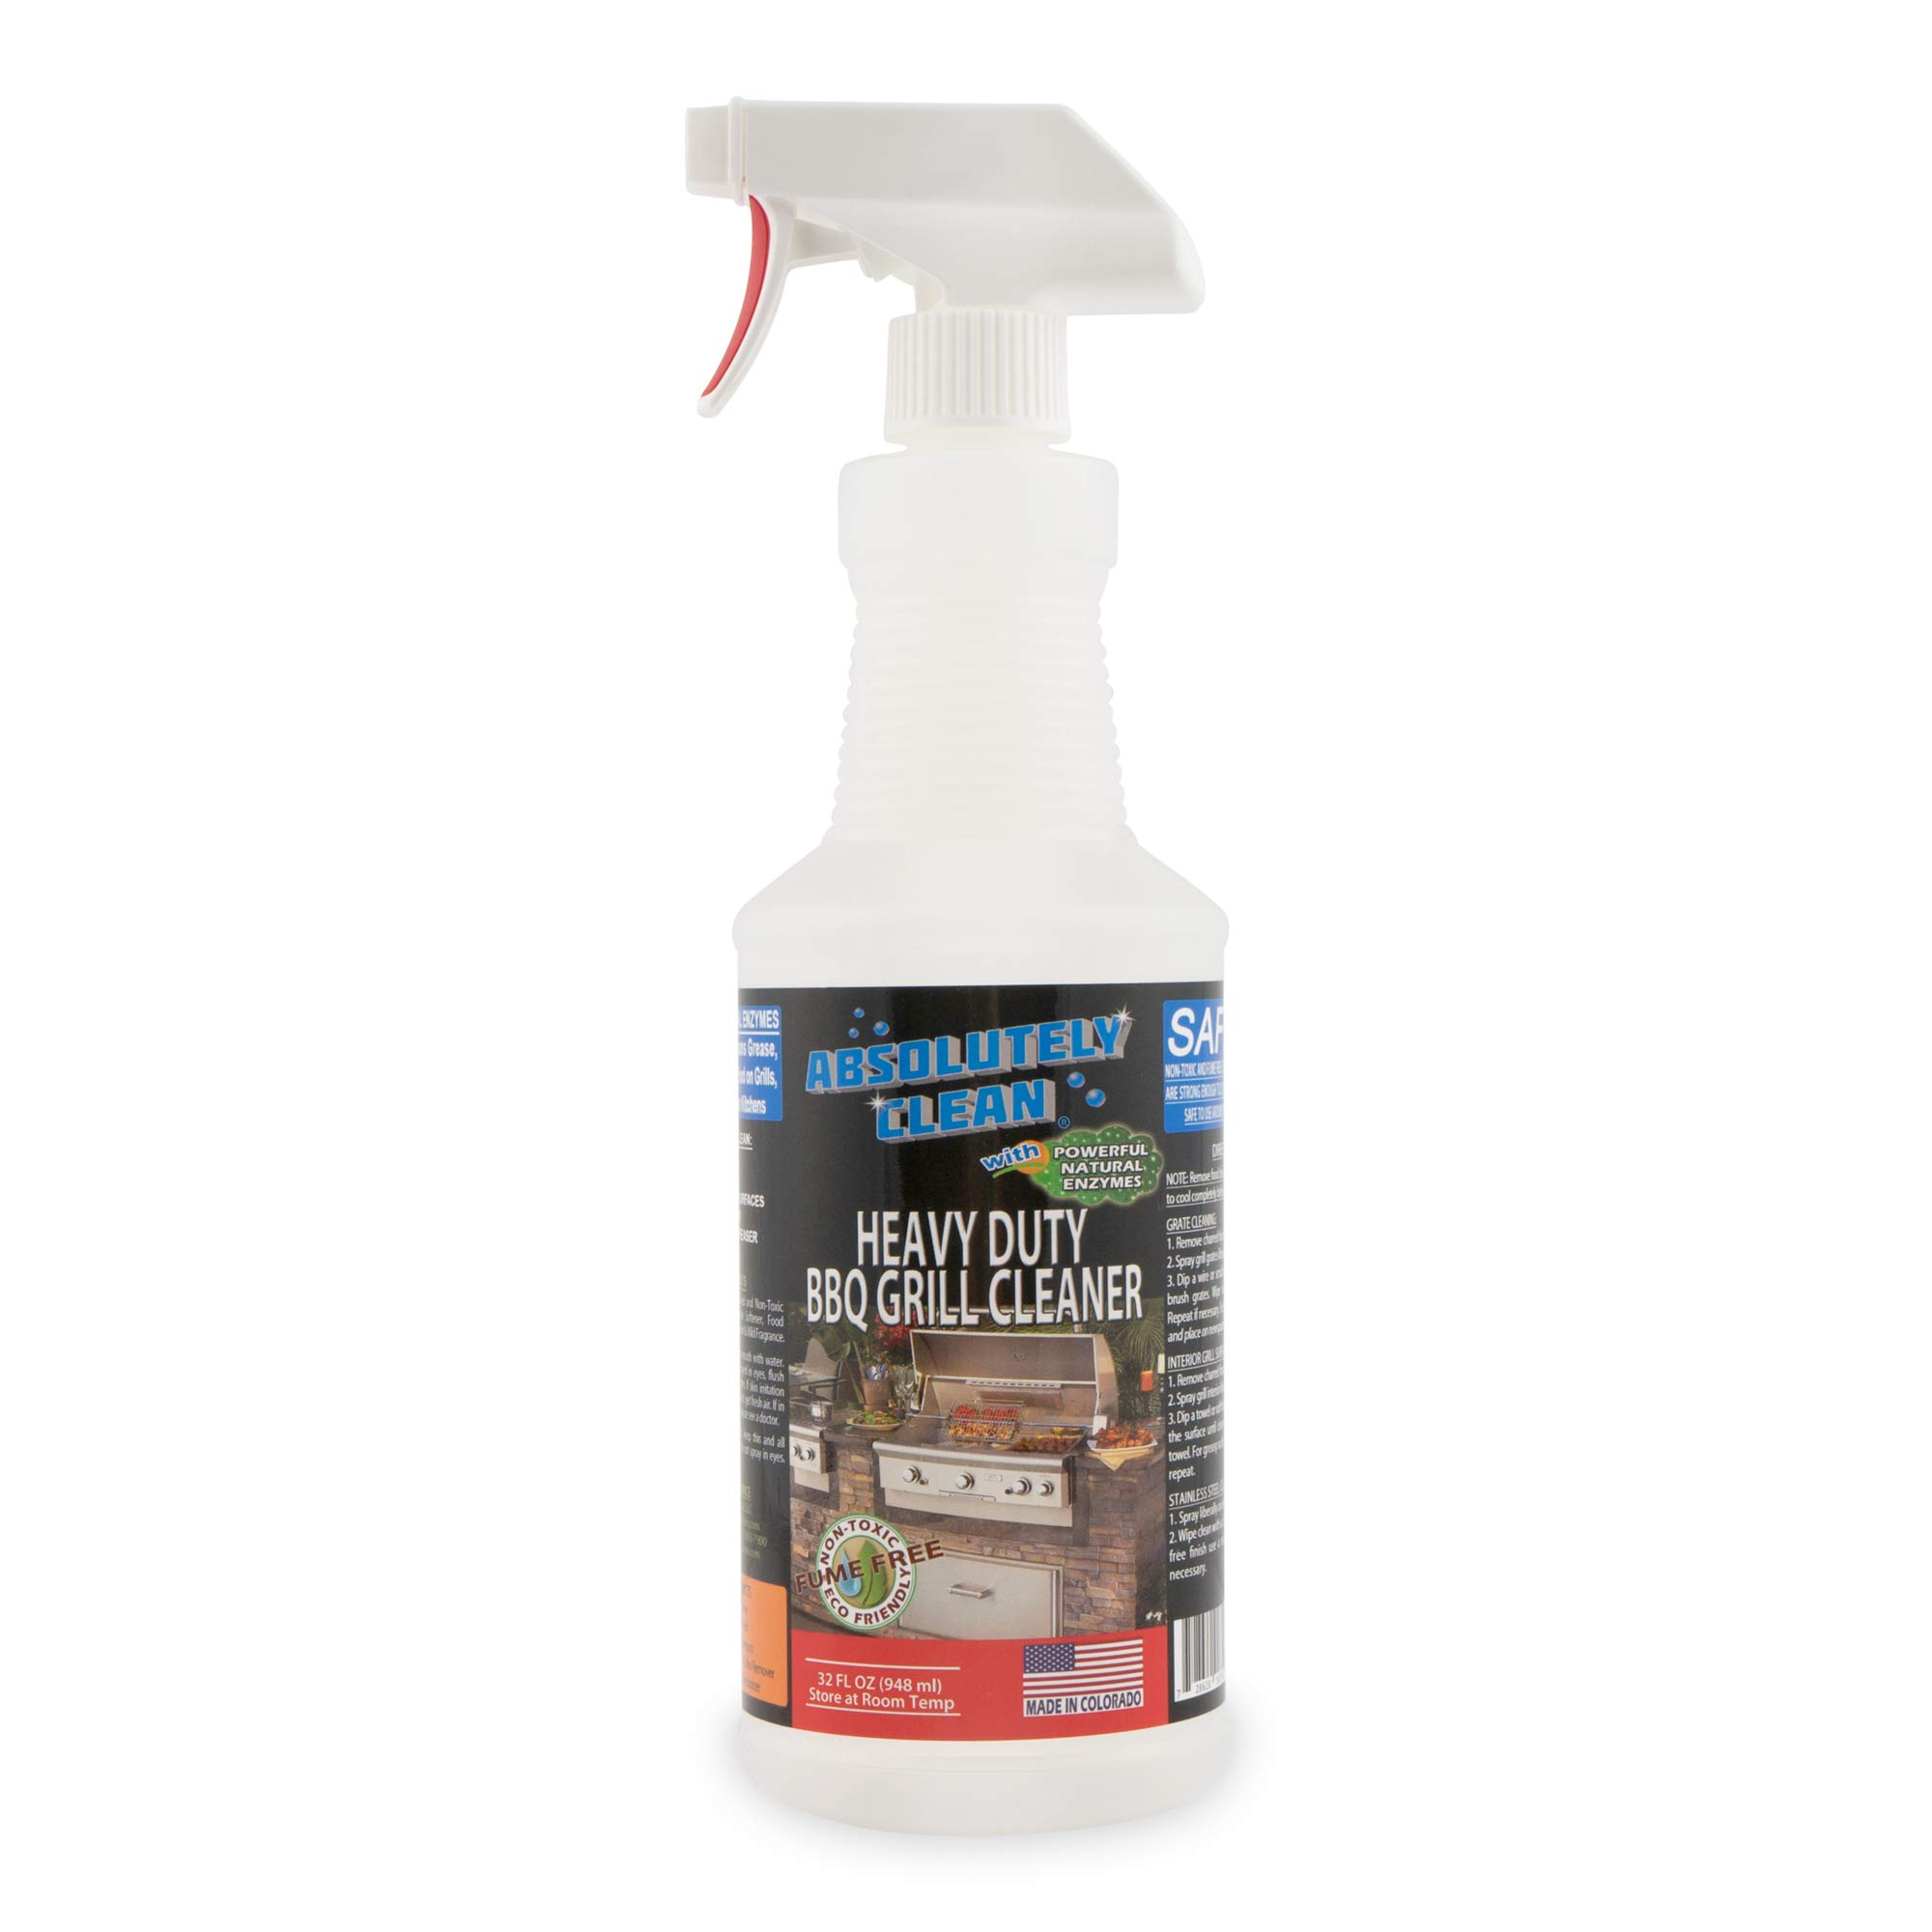 Absolutely Clean Amazing BBQ Grill Cleaning Spray, Professional Strength Degreaser, Natural Enzymes Make Grill Cleaning Easy (32oz)